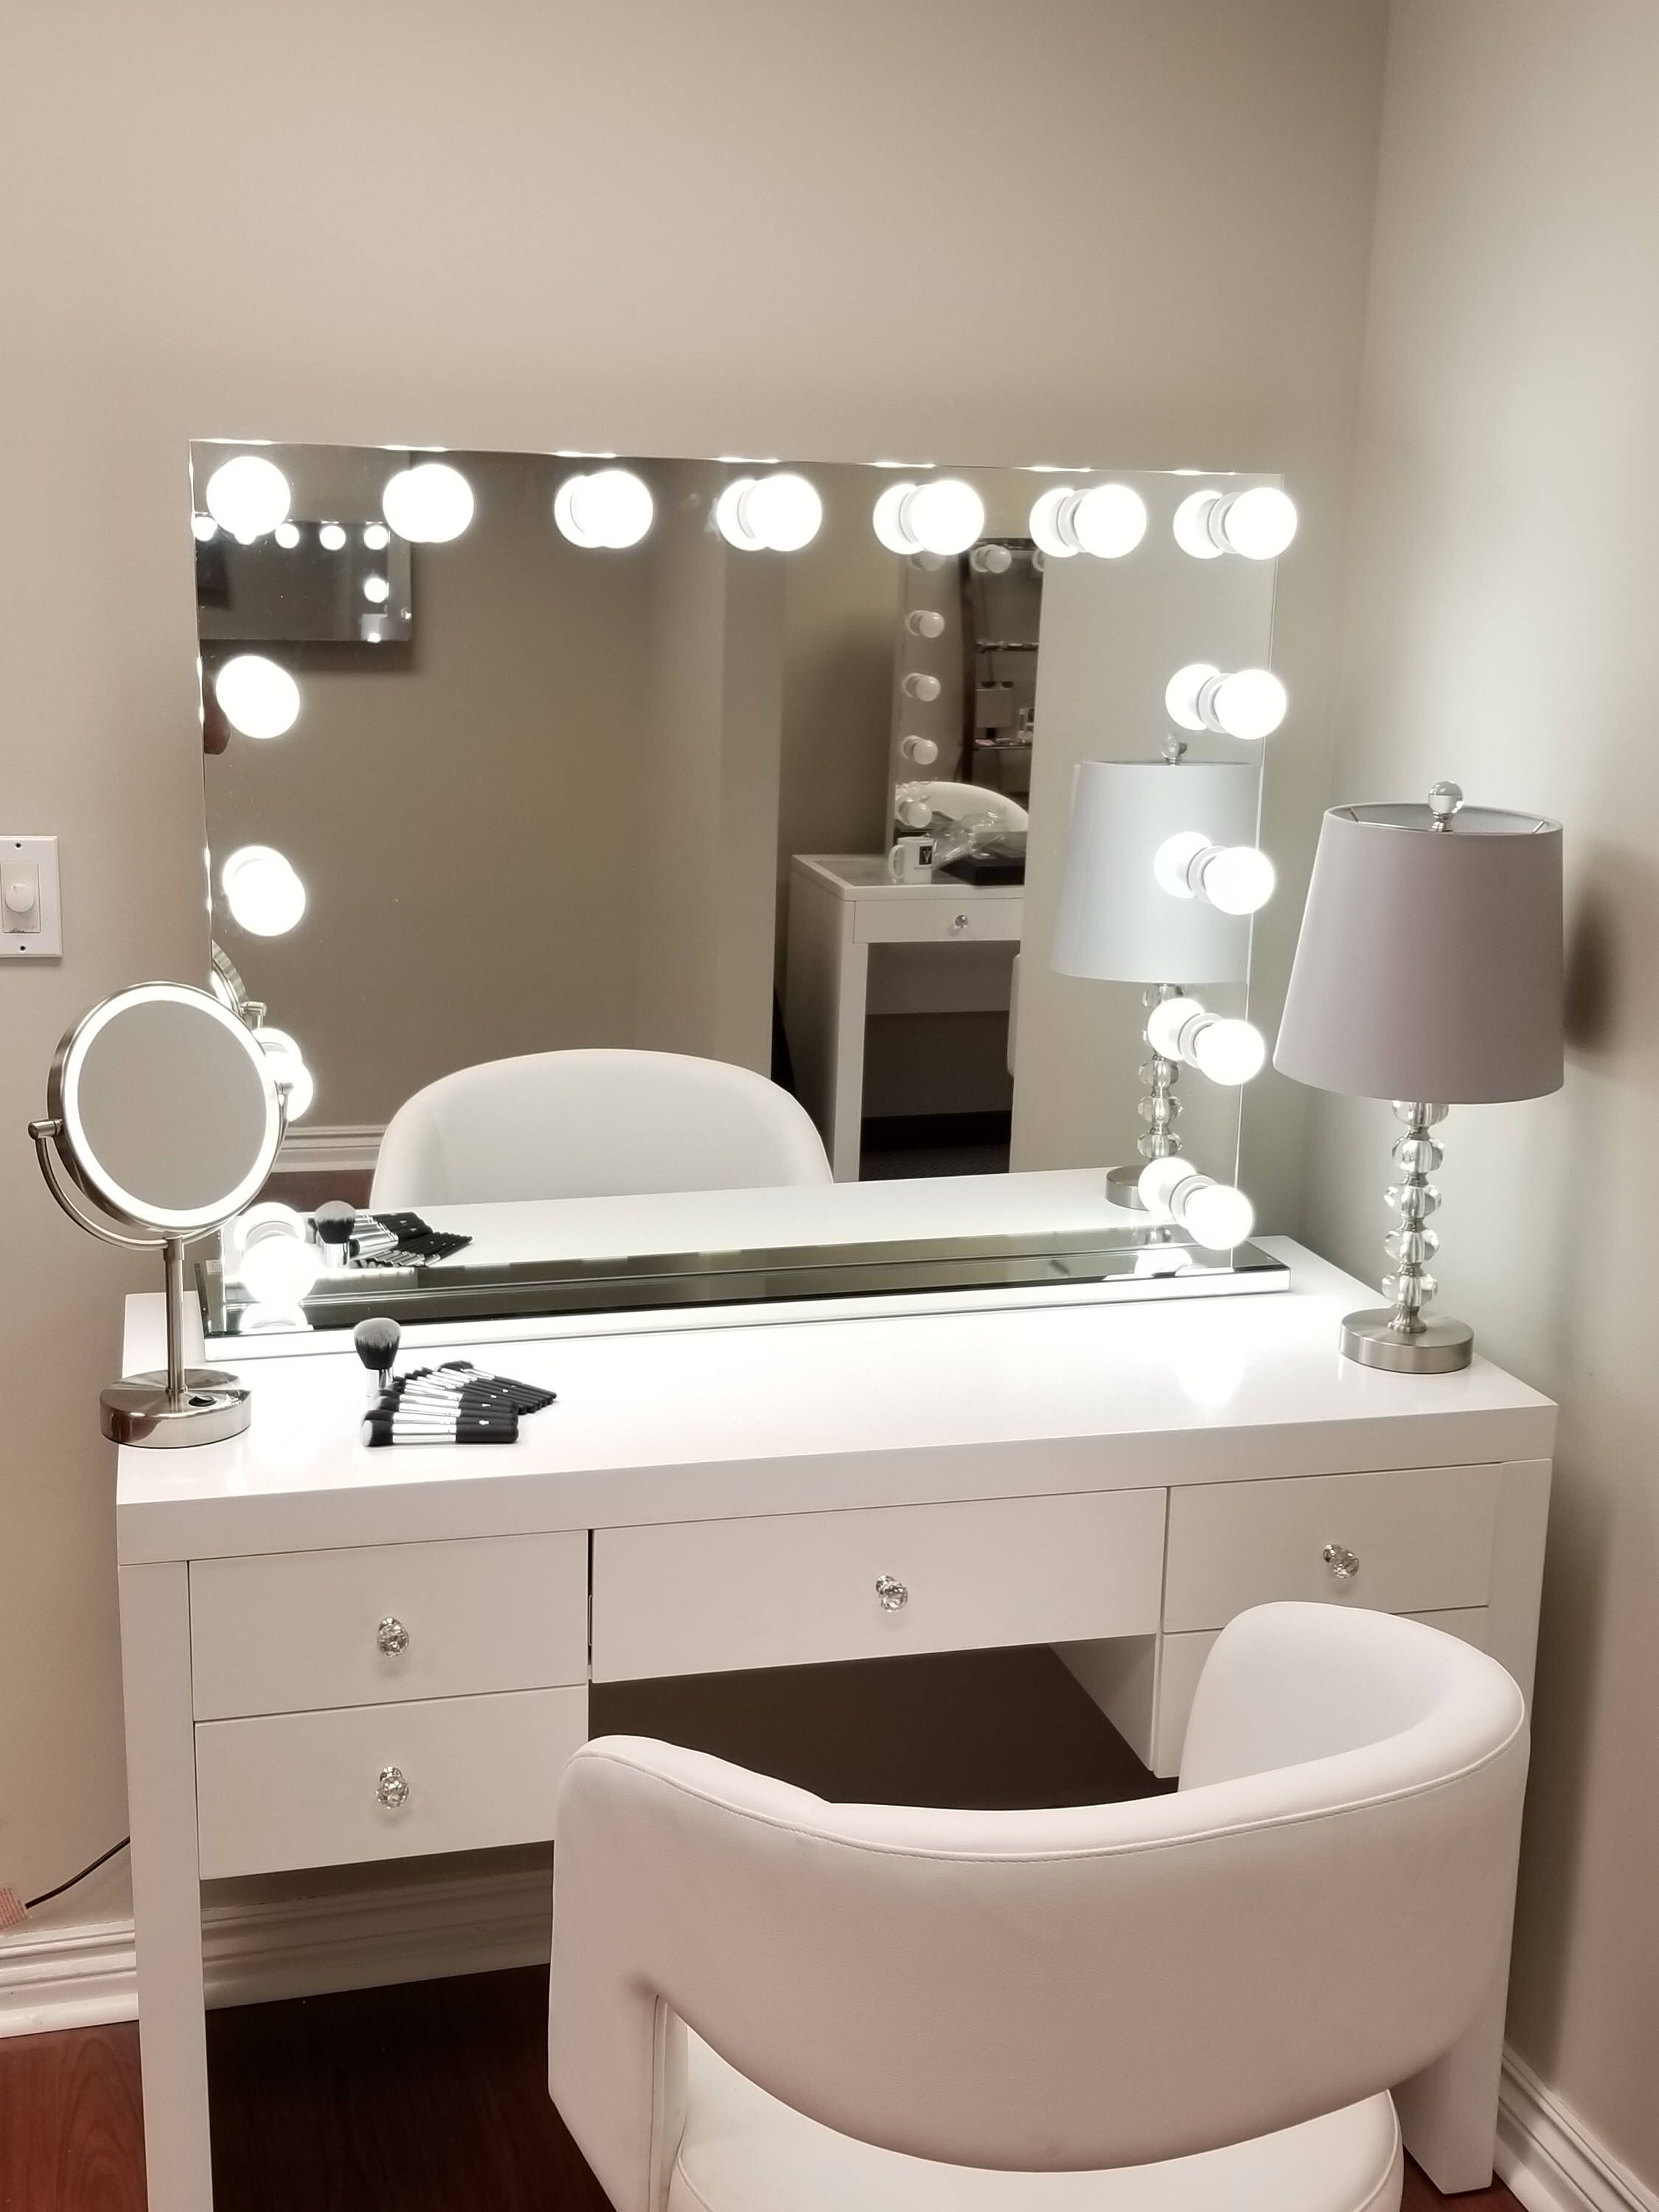 Xxl Bluetooth Hollywod Forever Lighted Vanity Mirror W Sliding Dimmer Dual Outlets By Impactvanity On E Lighted Vanity Mirror Vanity Mirror Stylish Bedroom